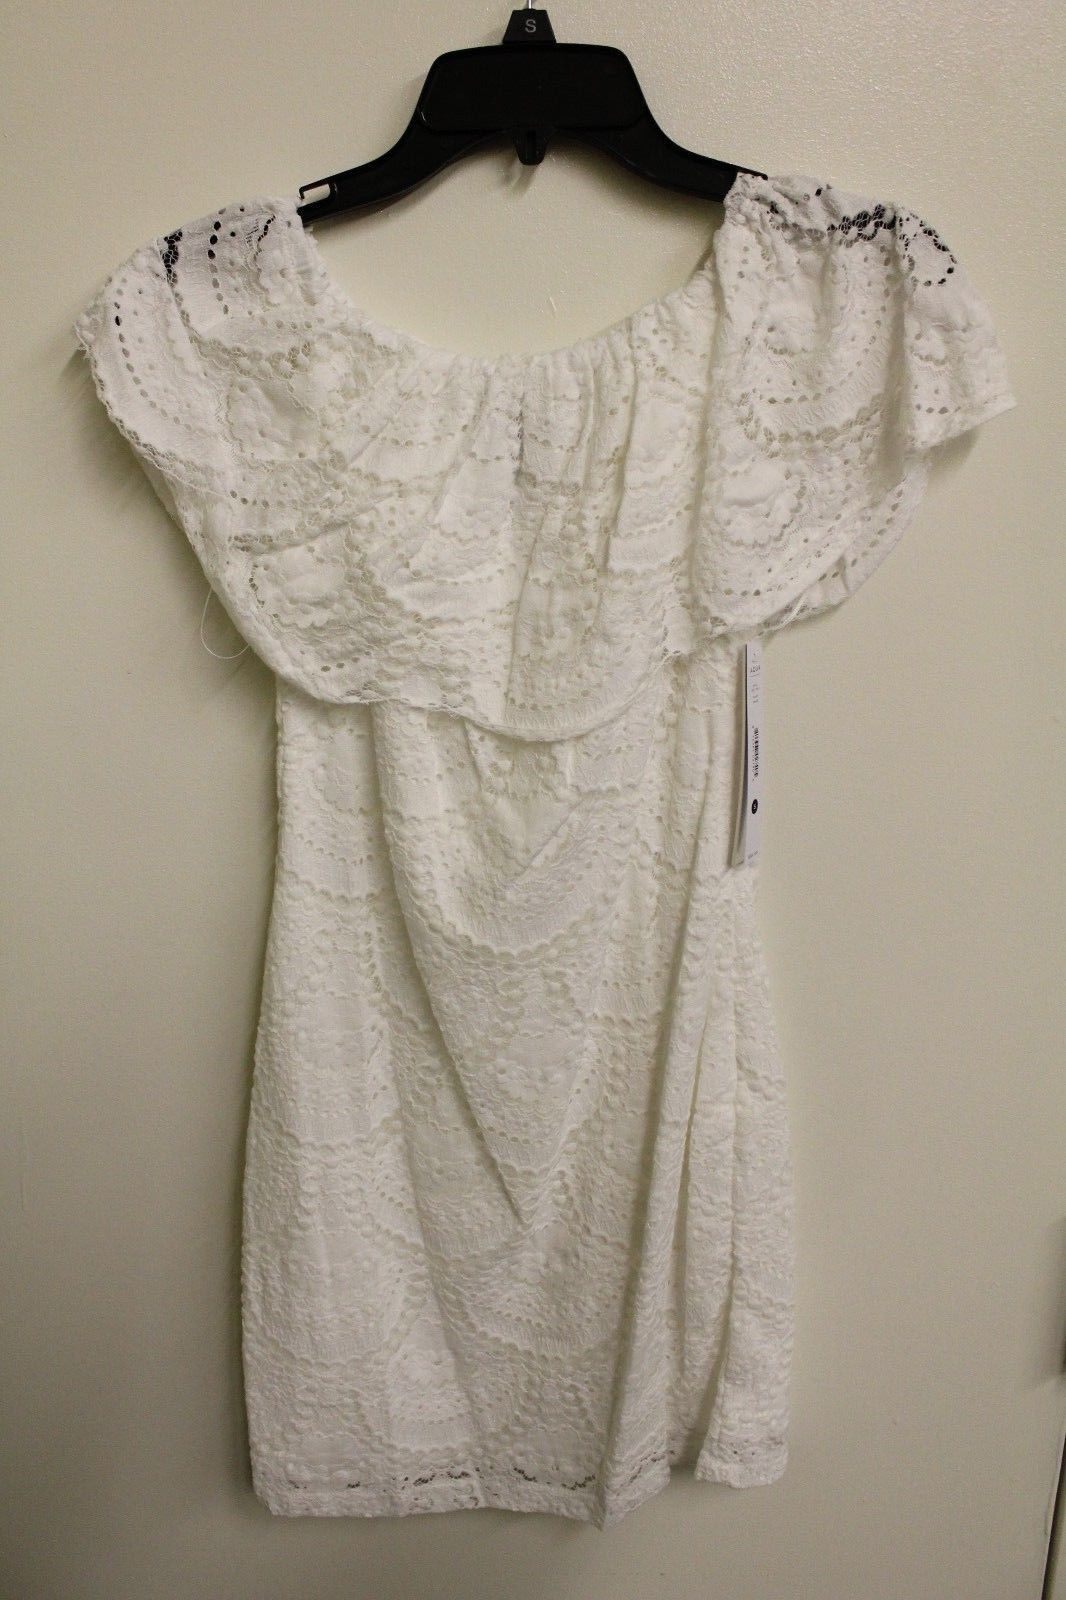 Aqua Women's White Lace Dress Shoulderless NWT